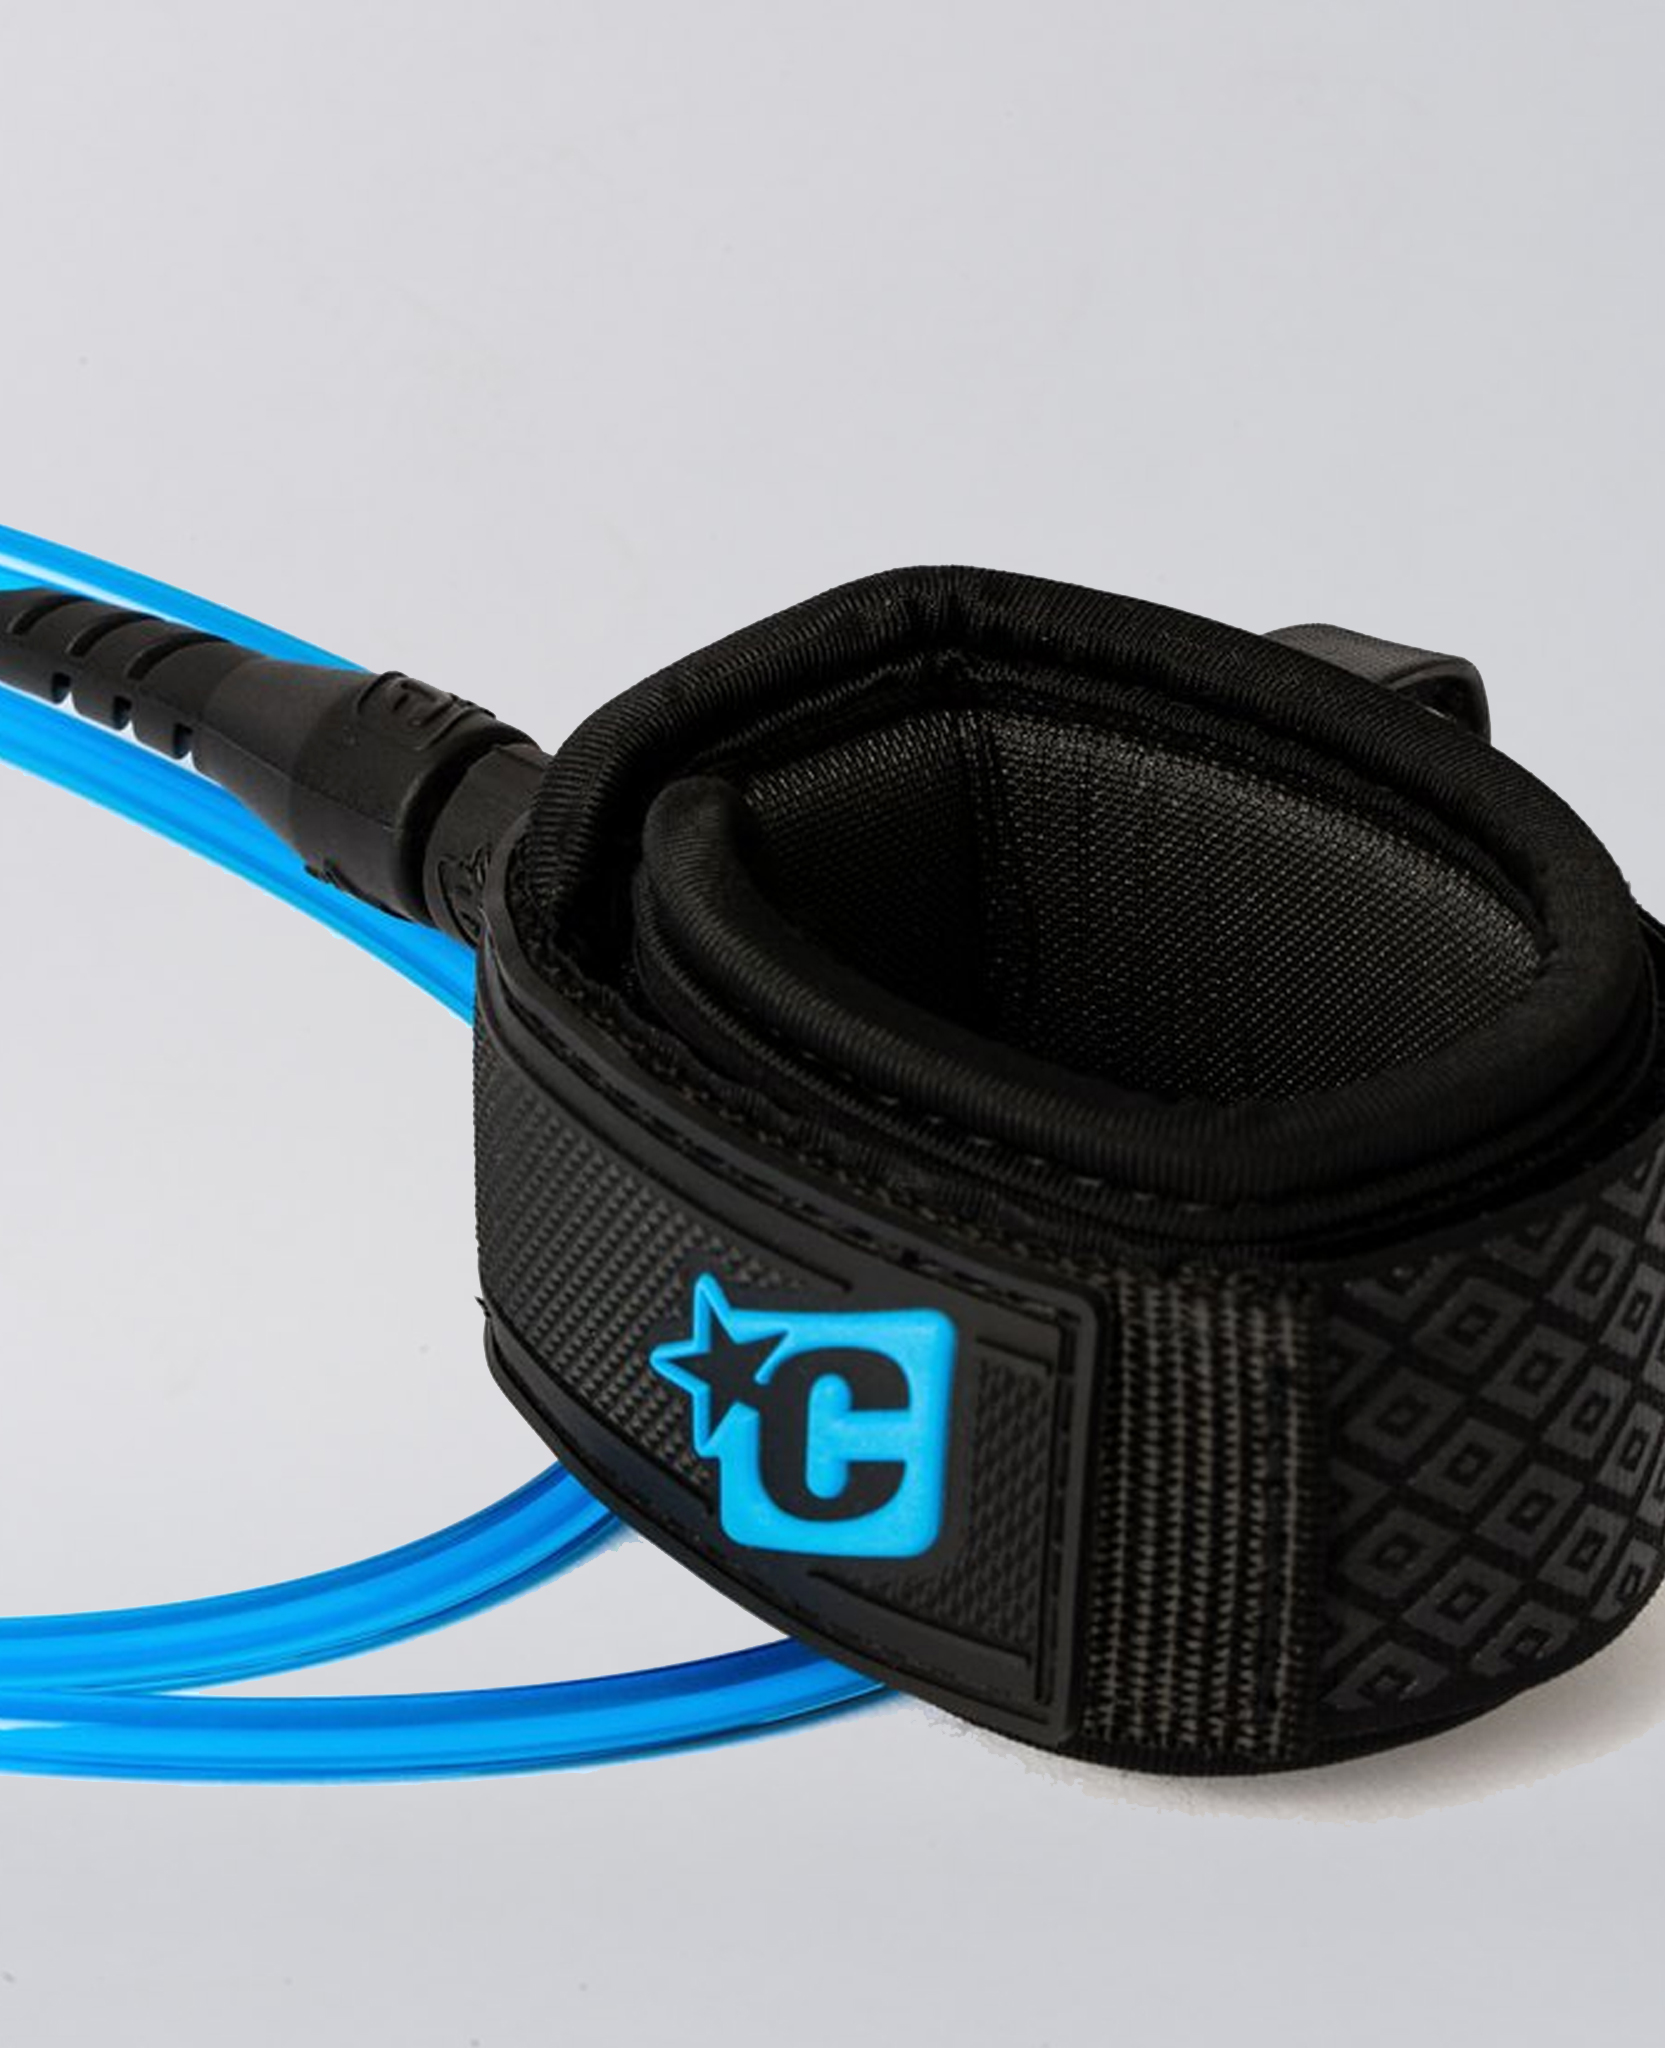 Creatures Pro 6FT Wave Leash Blue Black